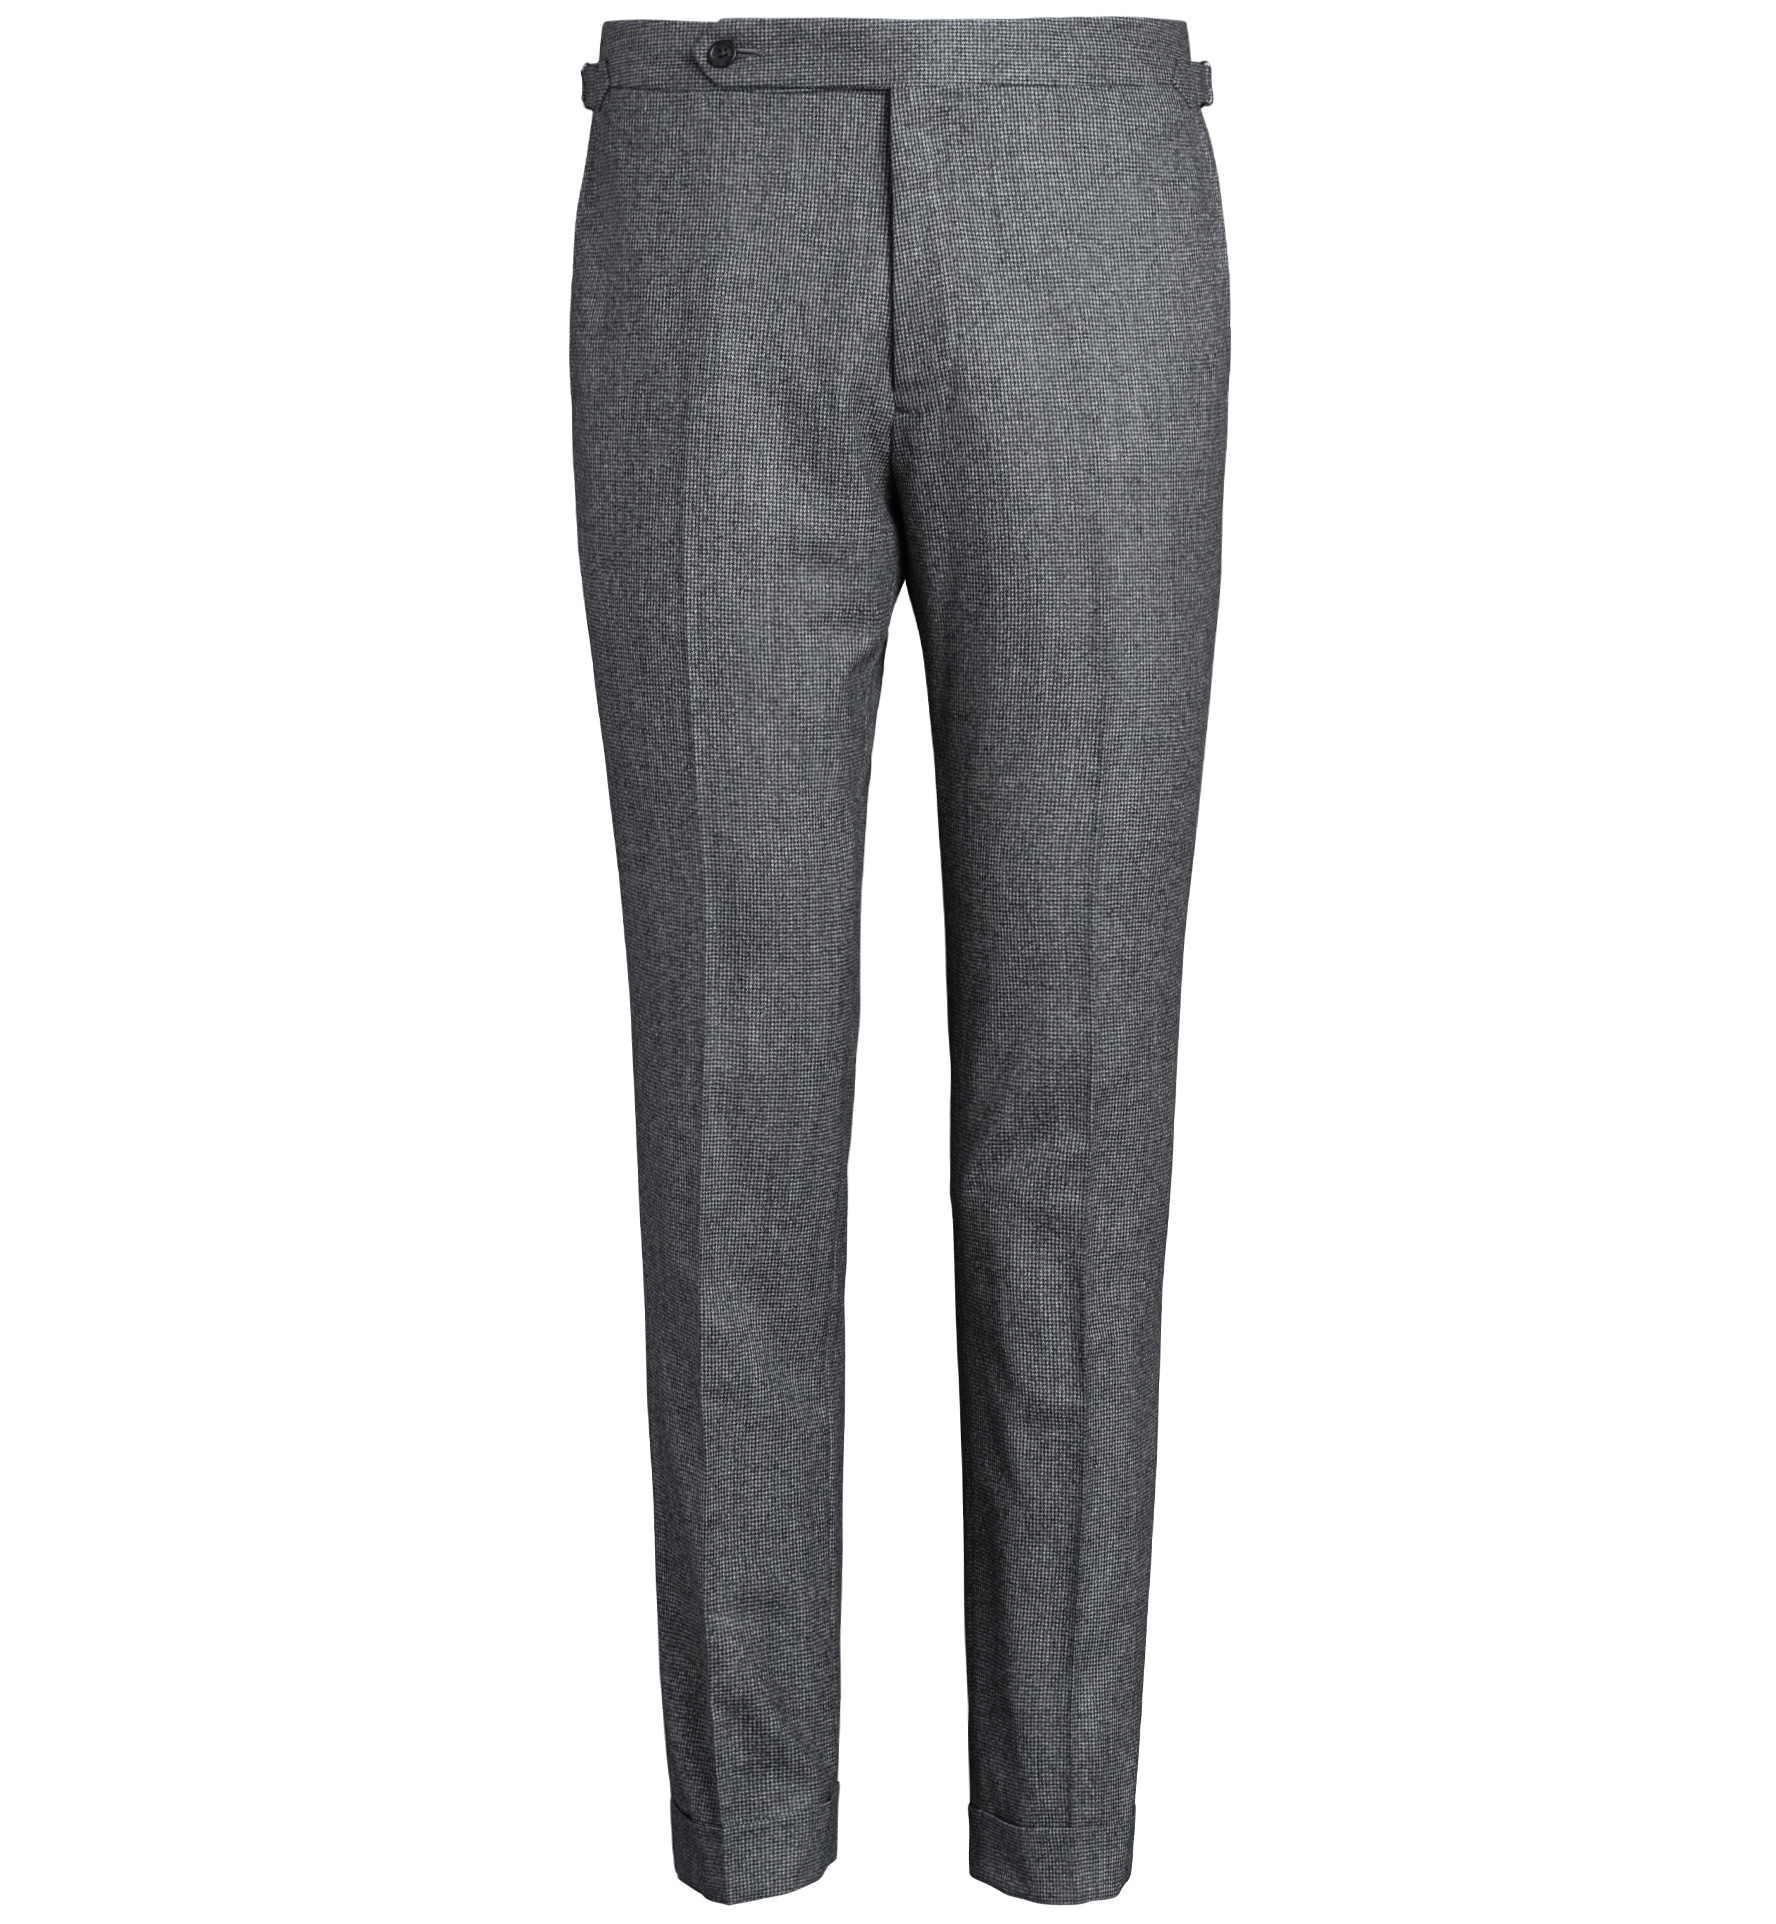 Zoom Image of Allen Grey Houndstooth Flannel Trouser